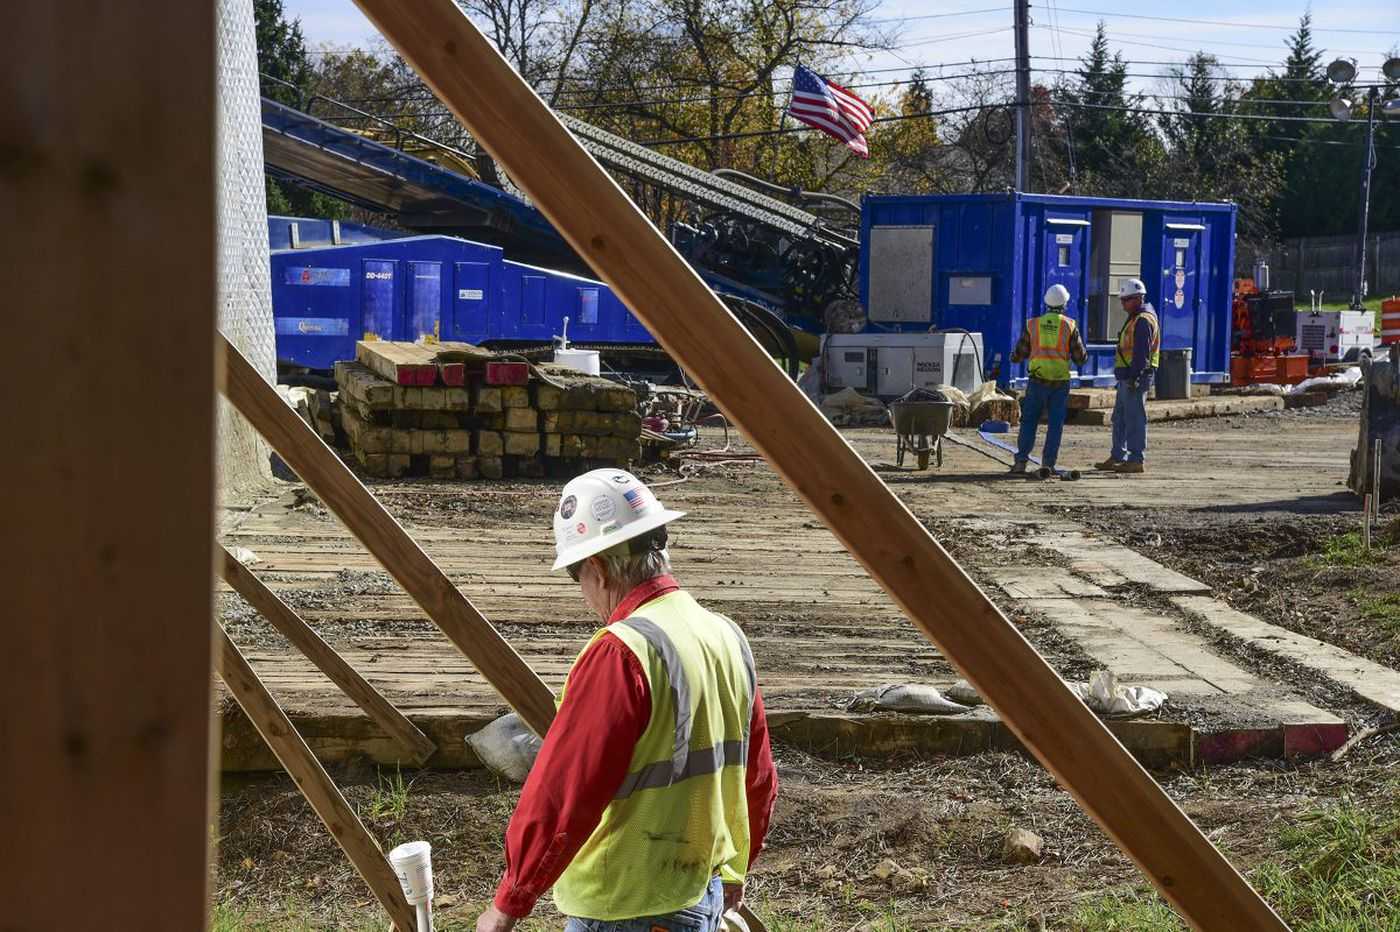 Pa. DEP scrutinizes Sunoco Mariner Pipeline 2 project for more unapproved drilling